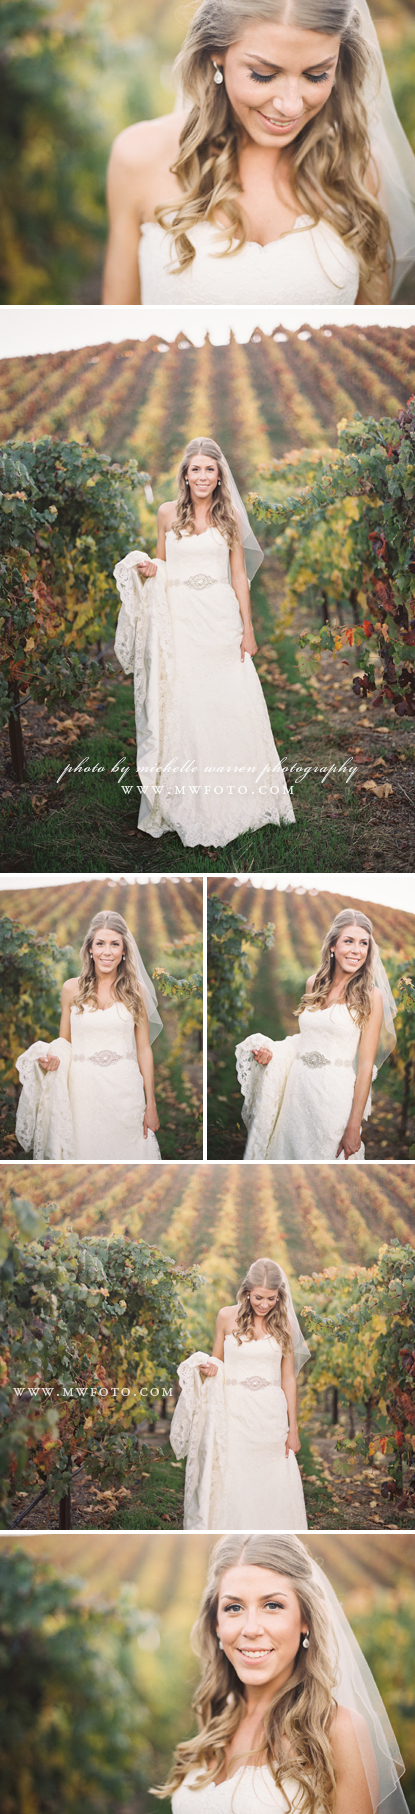 Vineyard Wedding Beautiful Bridal Portraits by Michelle Warren Photography    #vineyardwedding #bridalportraits #beautifulbride #wedding #winerywedding #murrietaswell #livermorewedding #weddingphotographer #weddingphotography #michellewarrenphotography